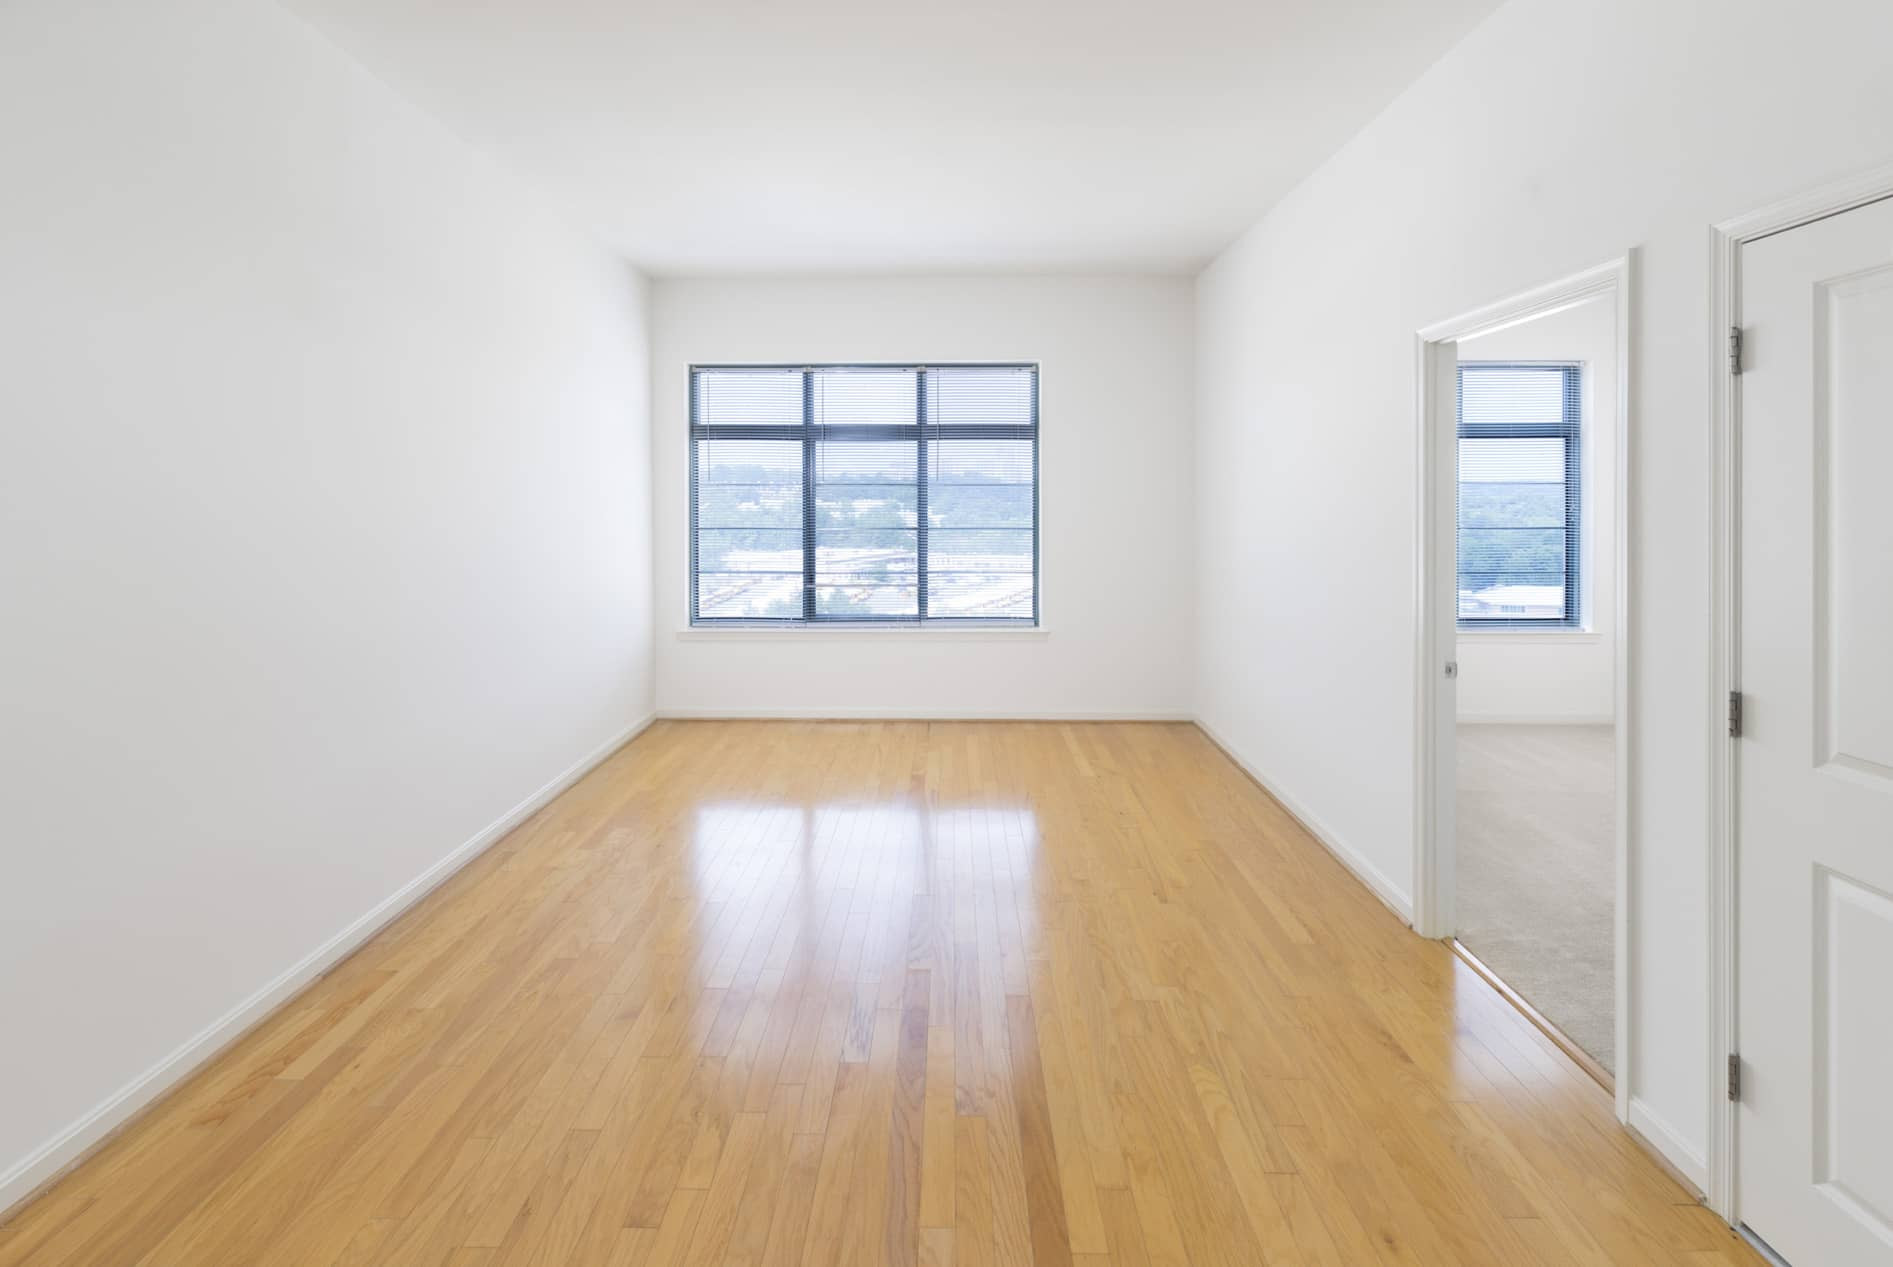 hardwood flooring flemington nj of apartments and pricing for delancey at shirlington village intended for apartments and pricing for delancey at shirlington village washington dc